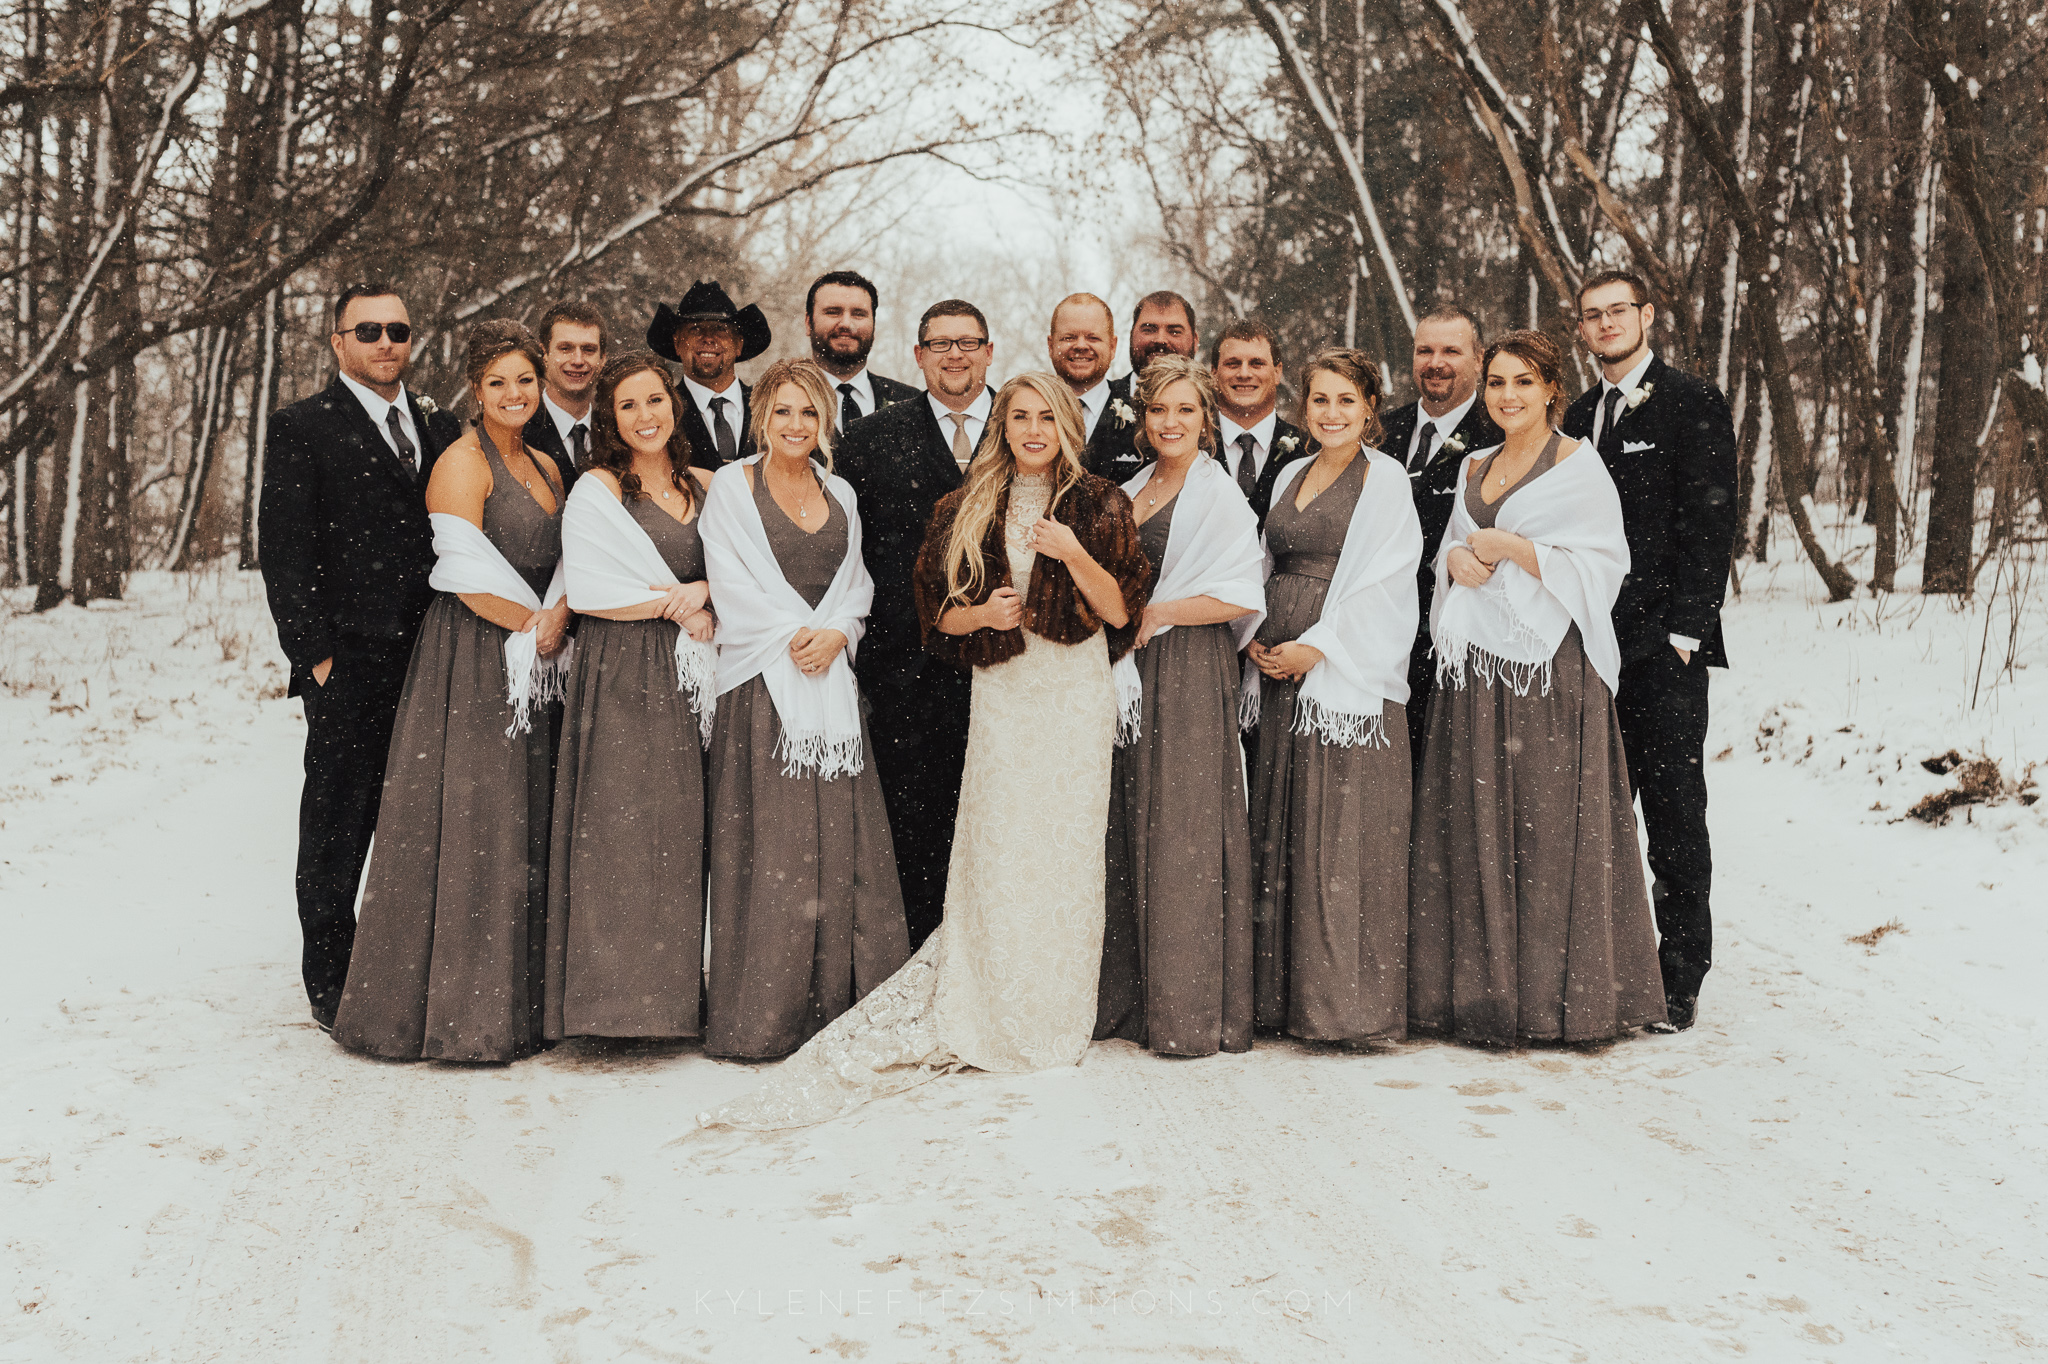 giannonatti-minnesota-winter-wedding-91.jpg